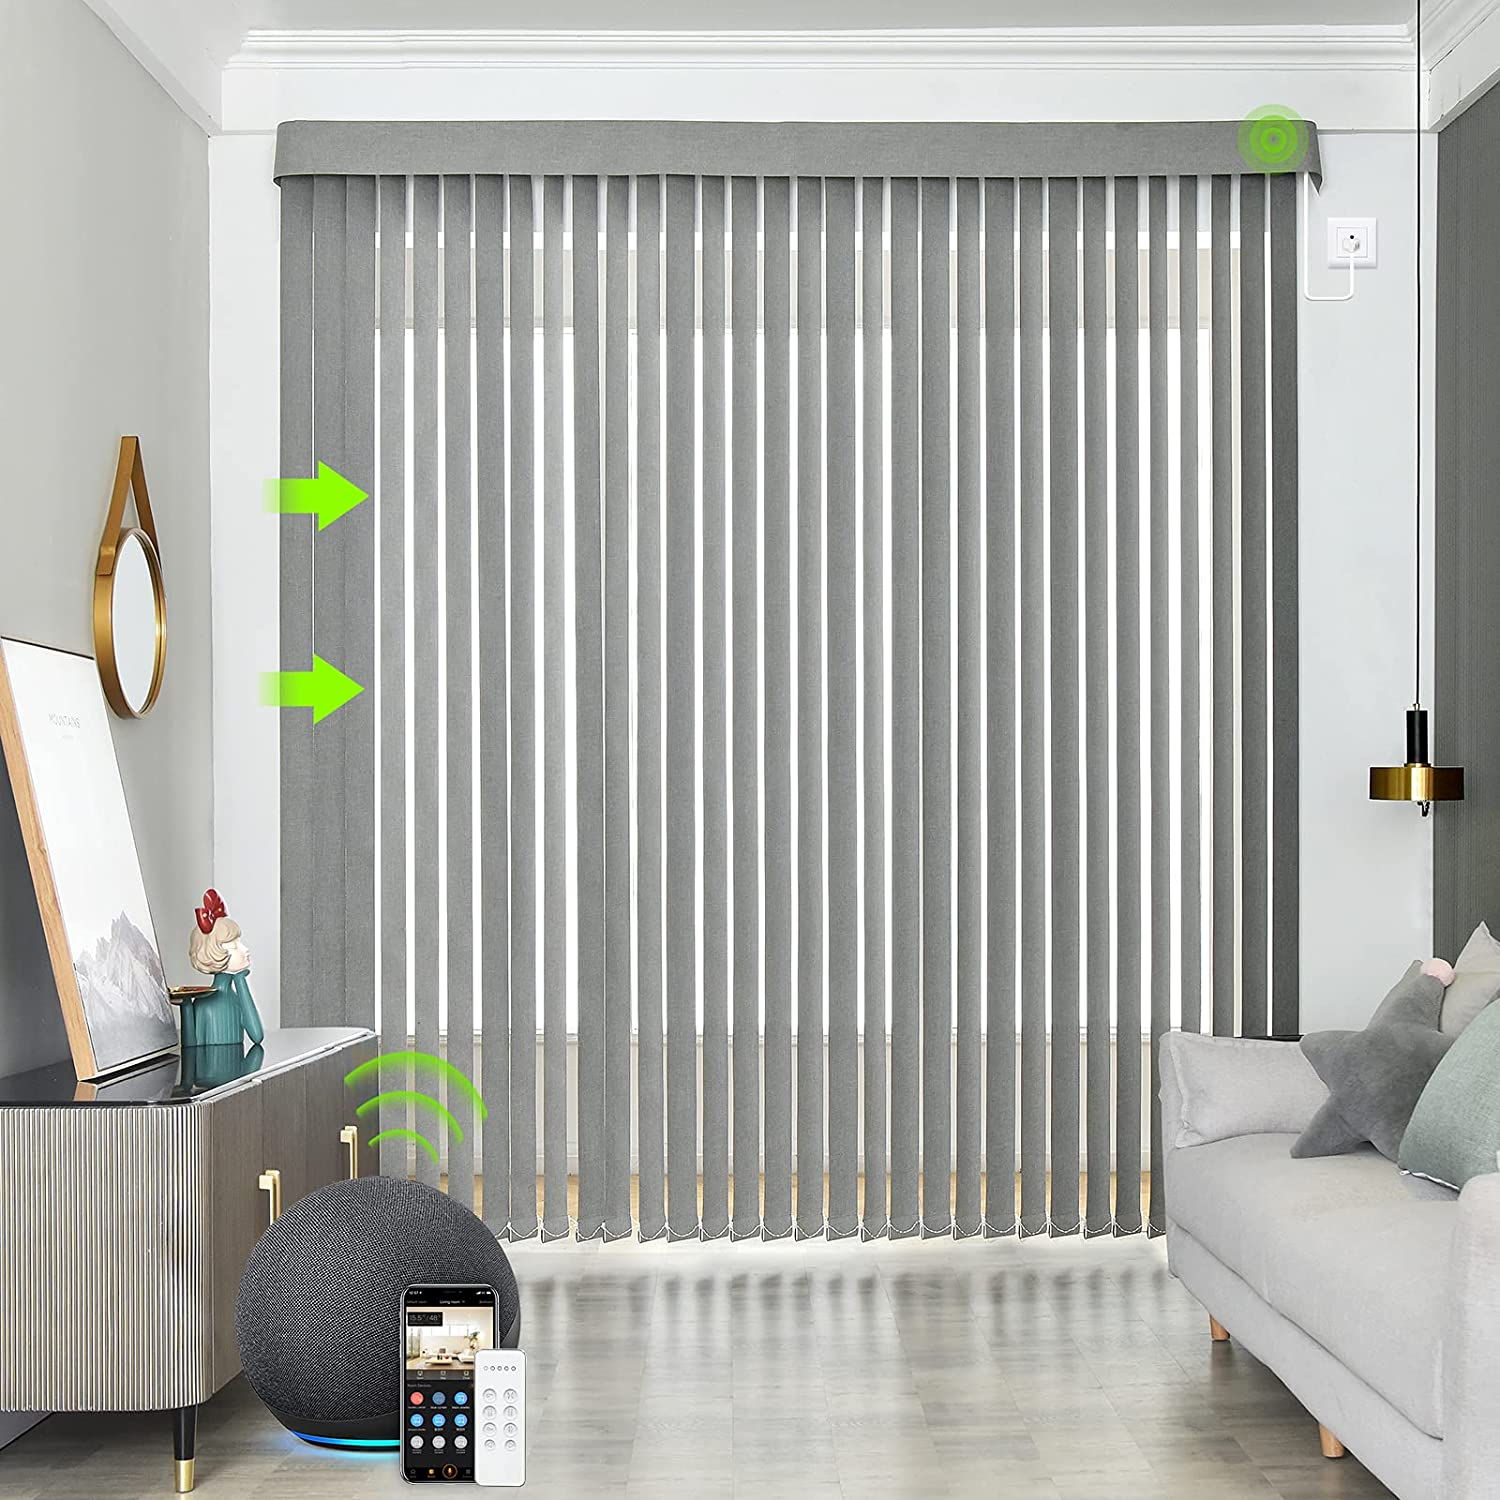 Yoolax Motorized Vertical Blinds Works with Alexa, Light Filtering Remote Control Window Blind Custom Size, Privacy Light Control Slats, Blackout Electric Blinds for Smart Home Office (Smoky Grey)